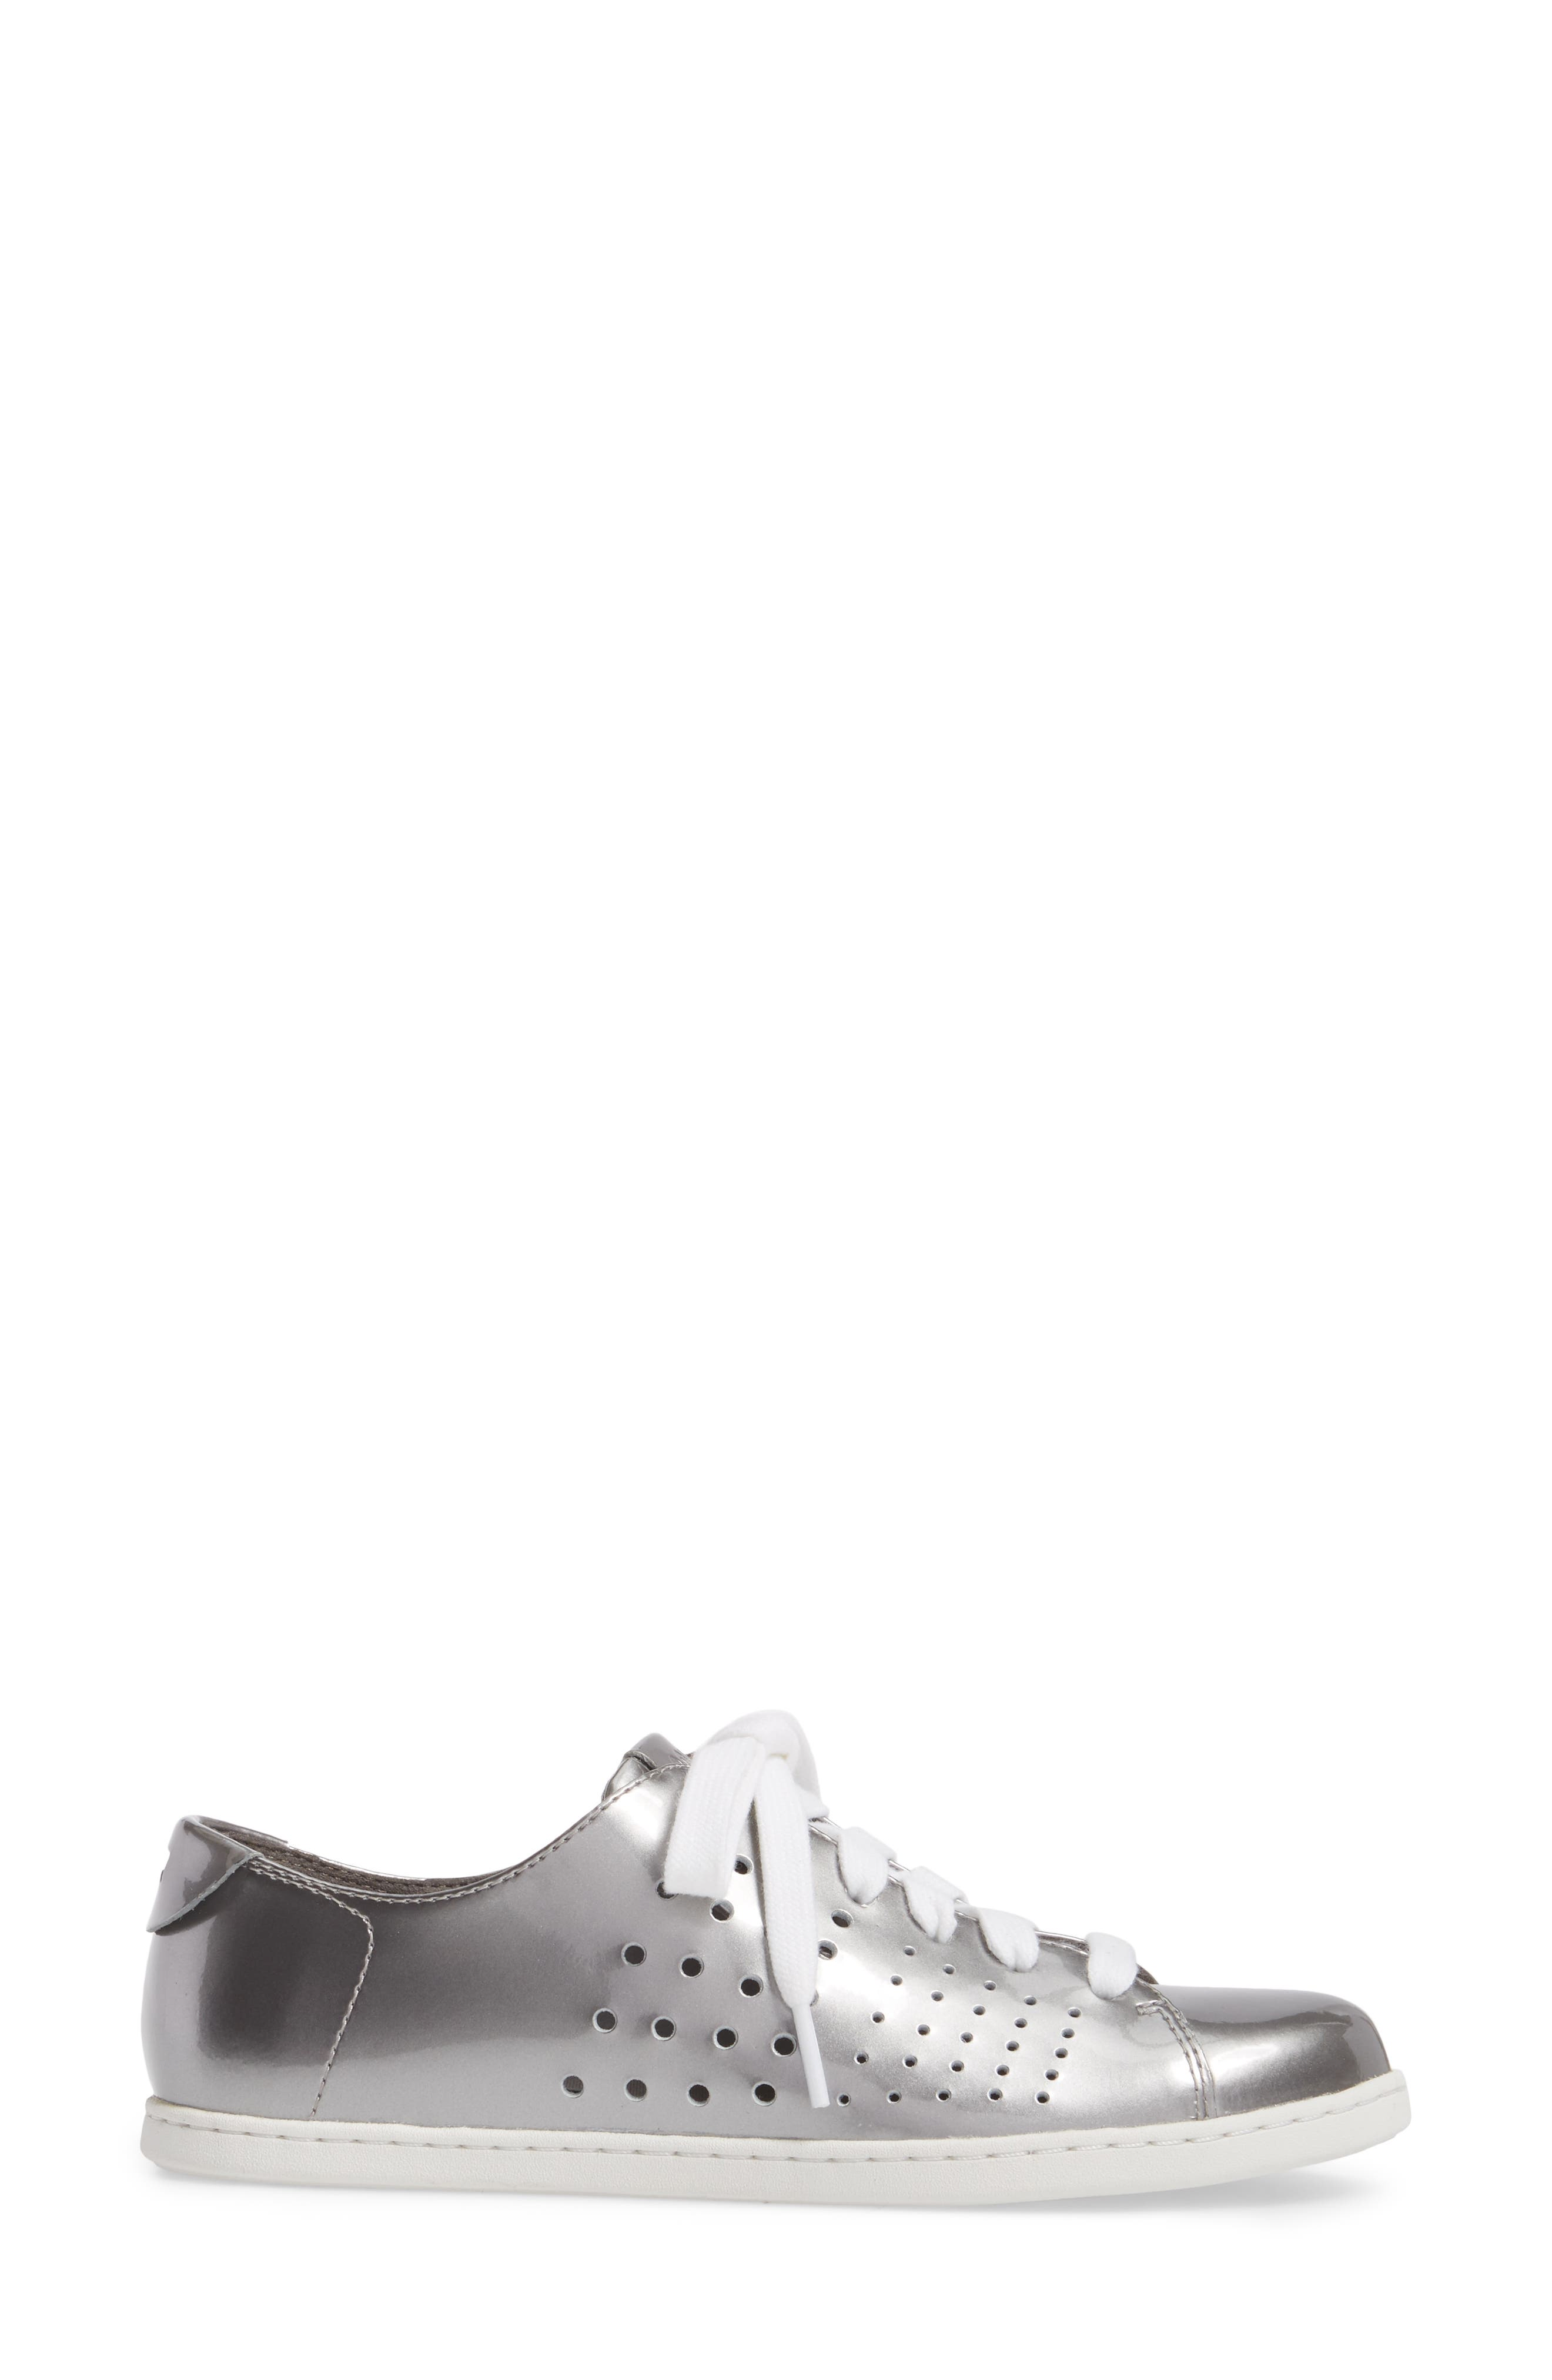 Twins Perforated Low Top Sneaker,                             Alternate thumbnail 3, color,                             030